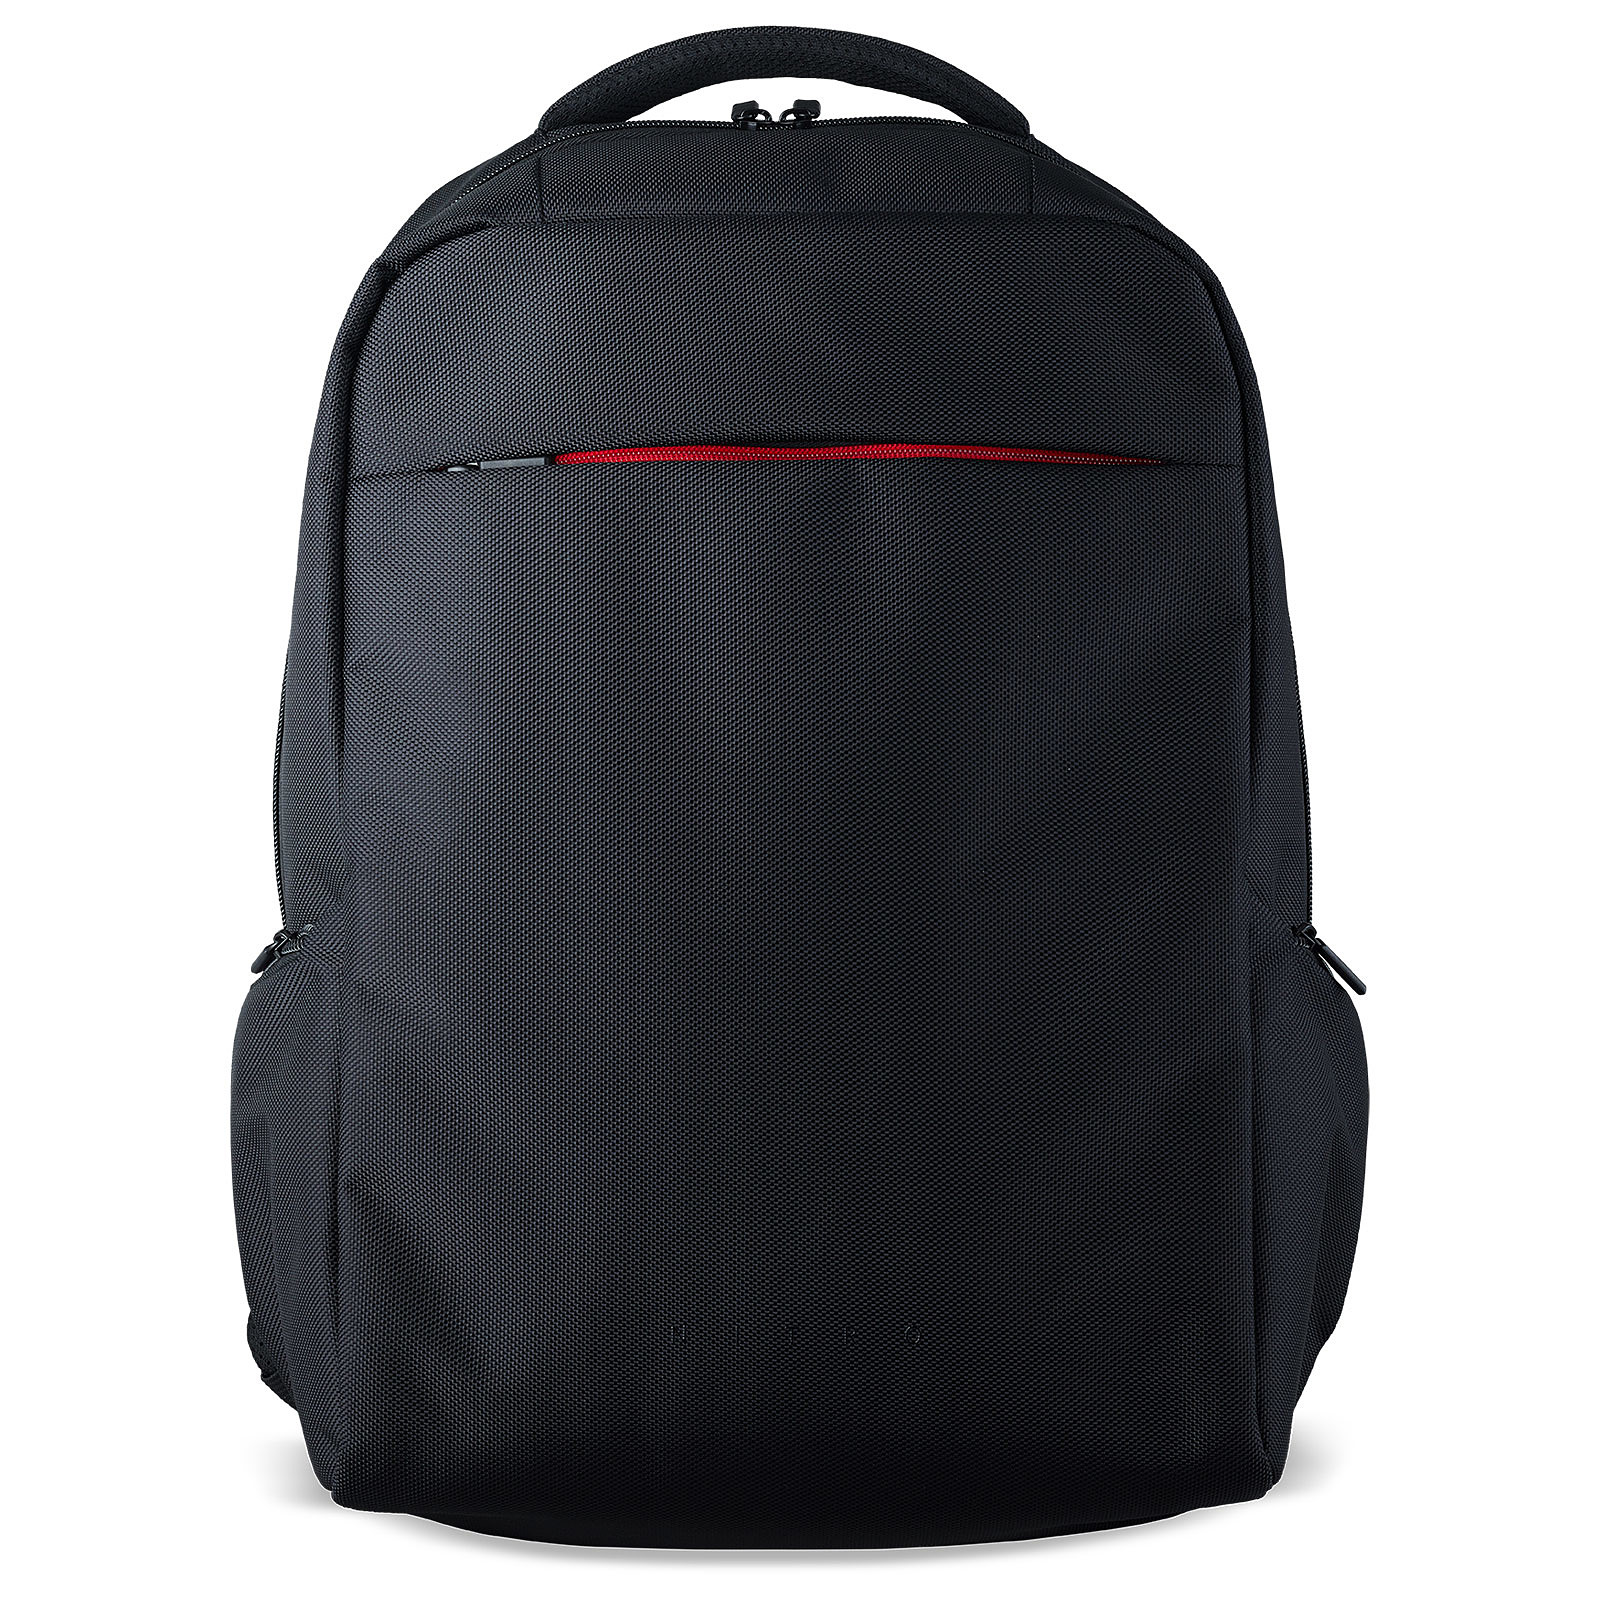 Acer Nitro Gaming Backpack 17""